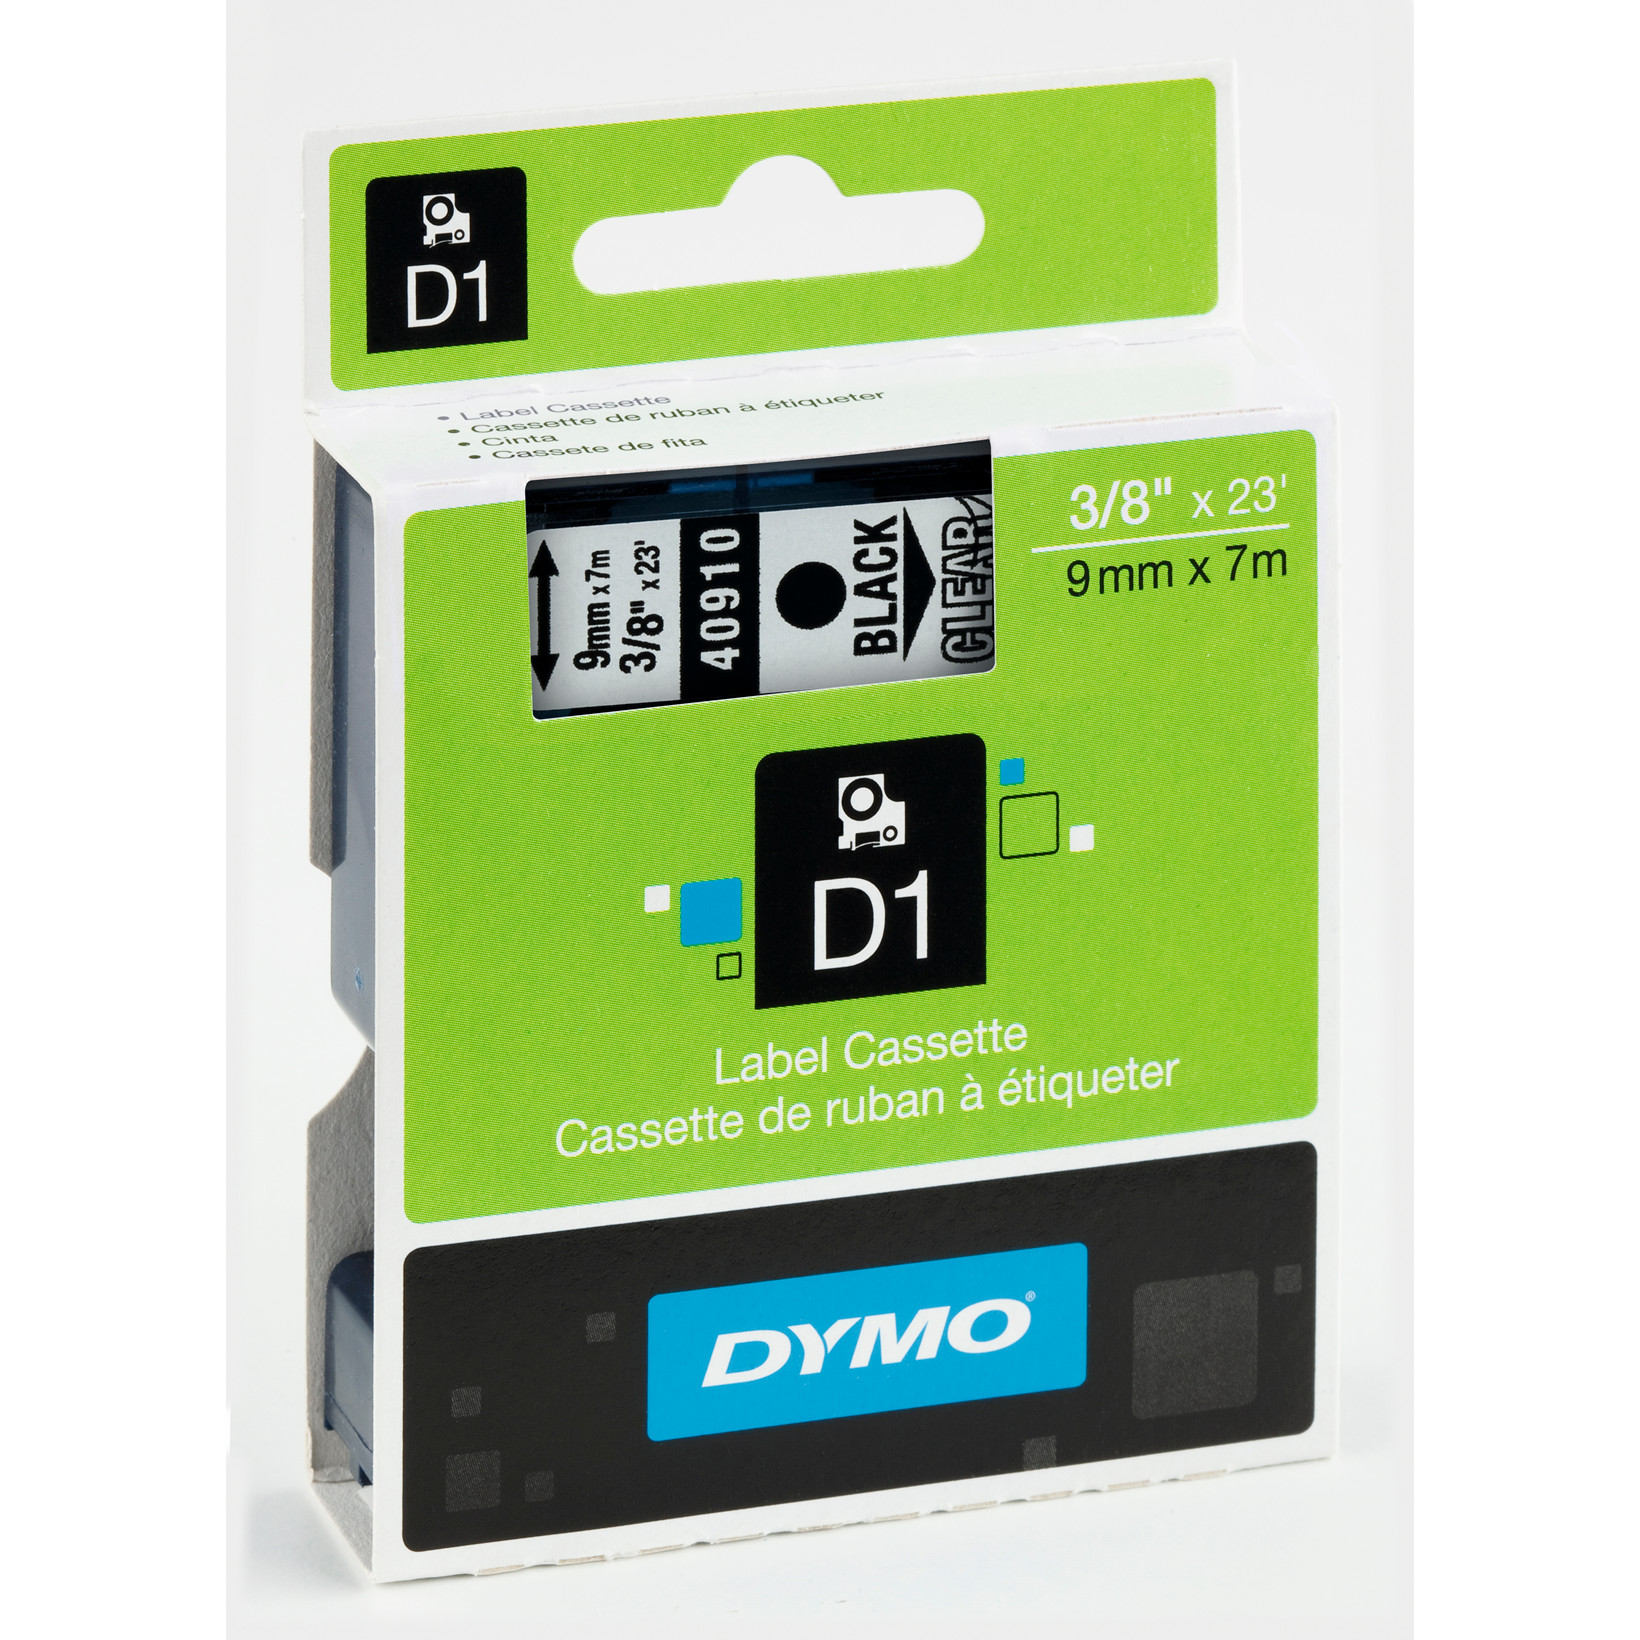 DYMO D1 40910 - Labeltape 9 mm sort på klar